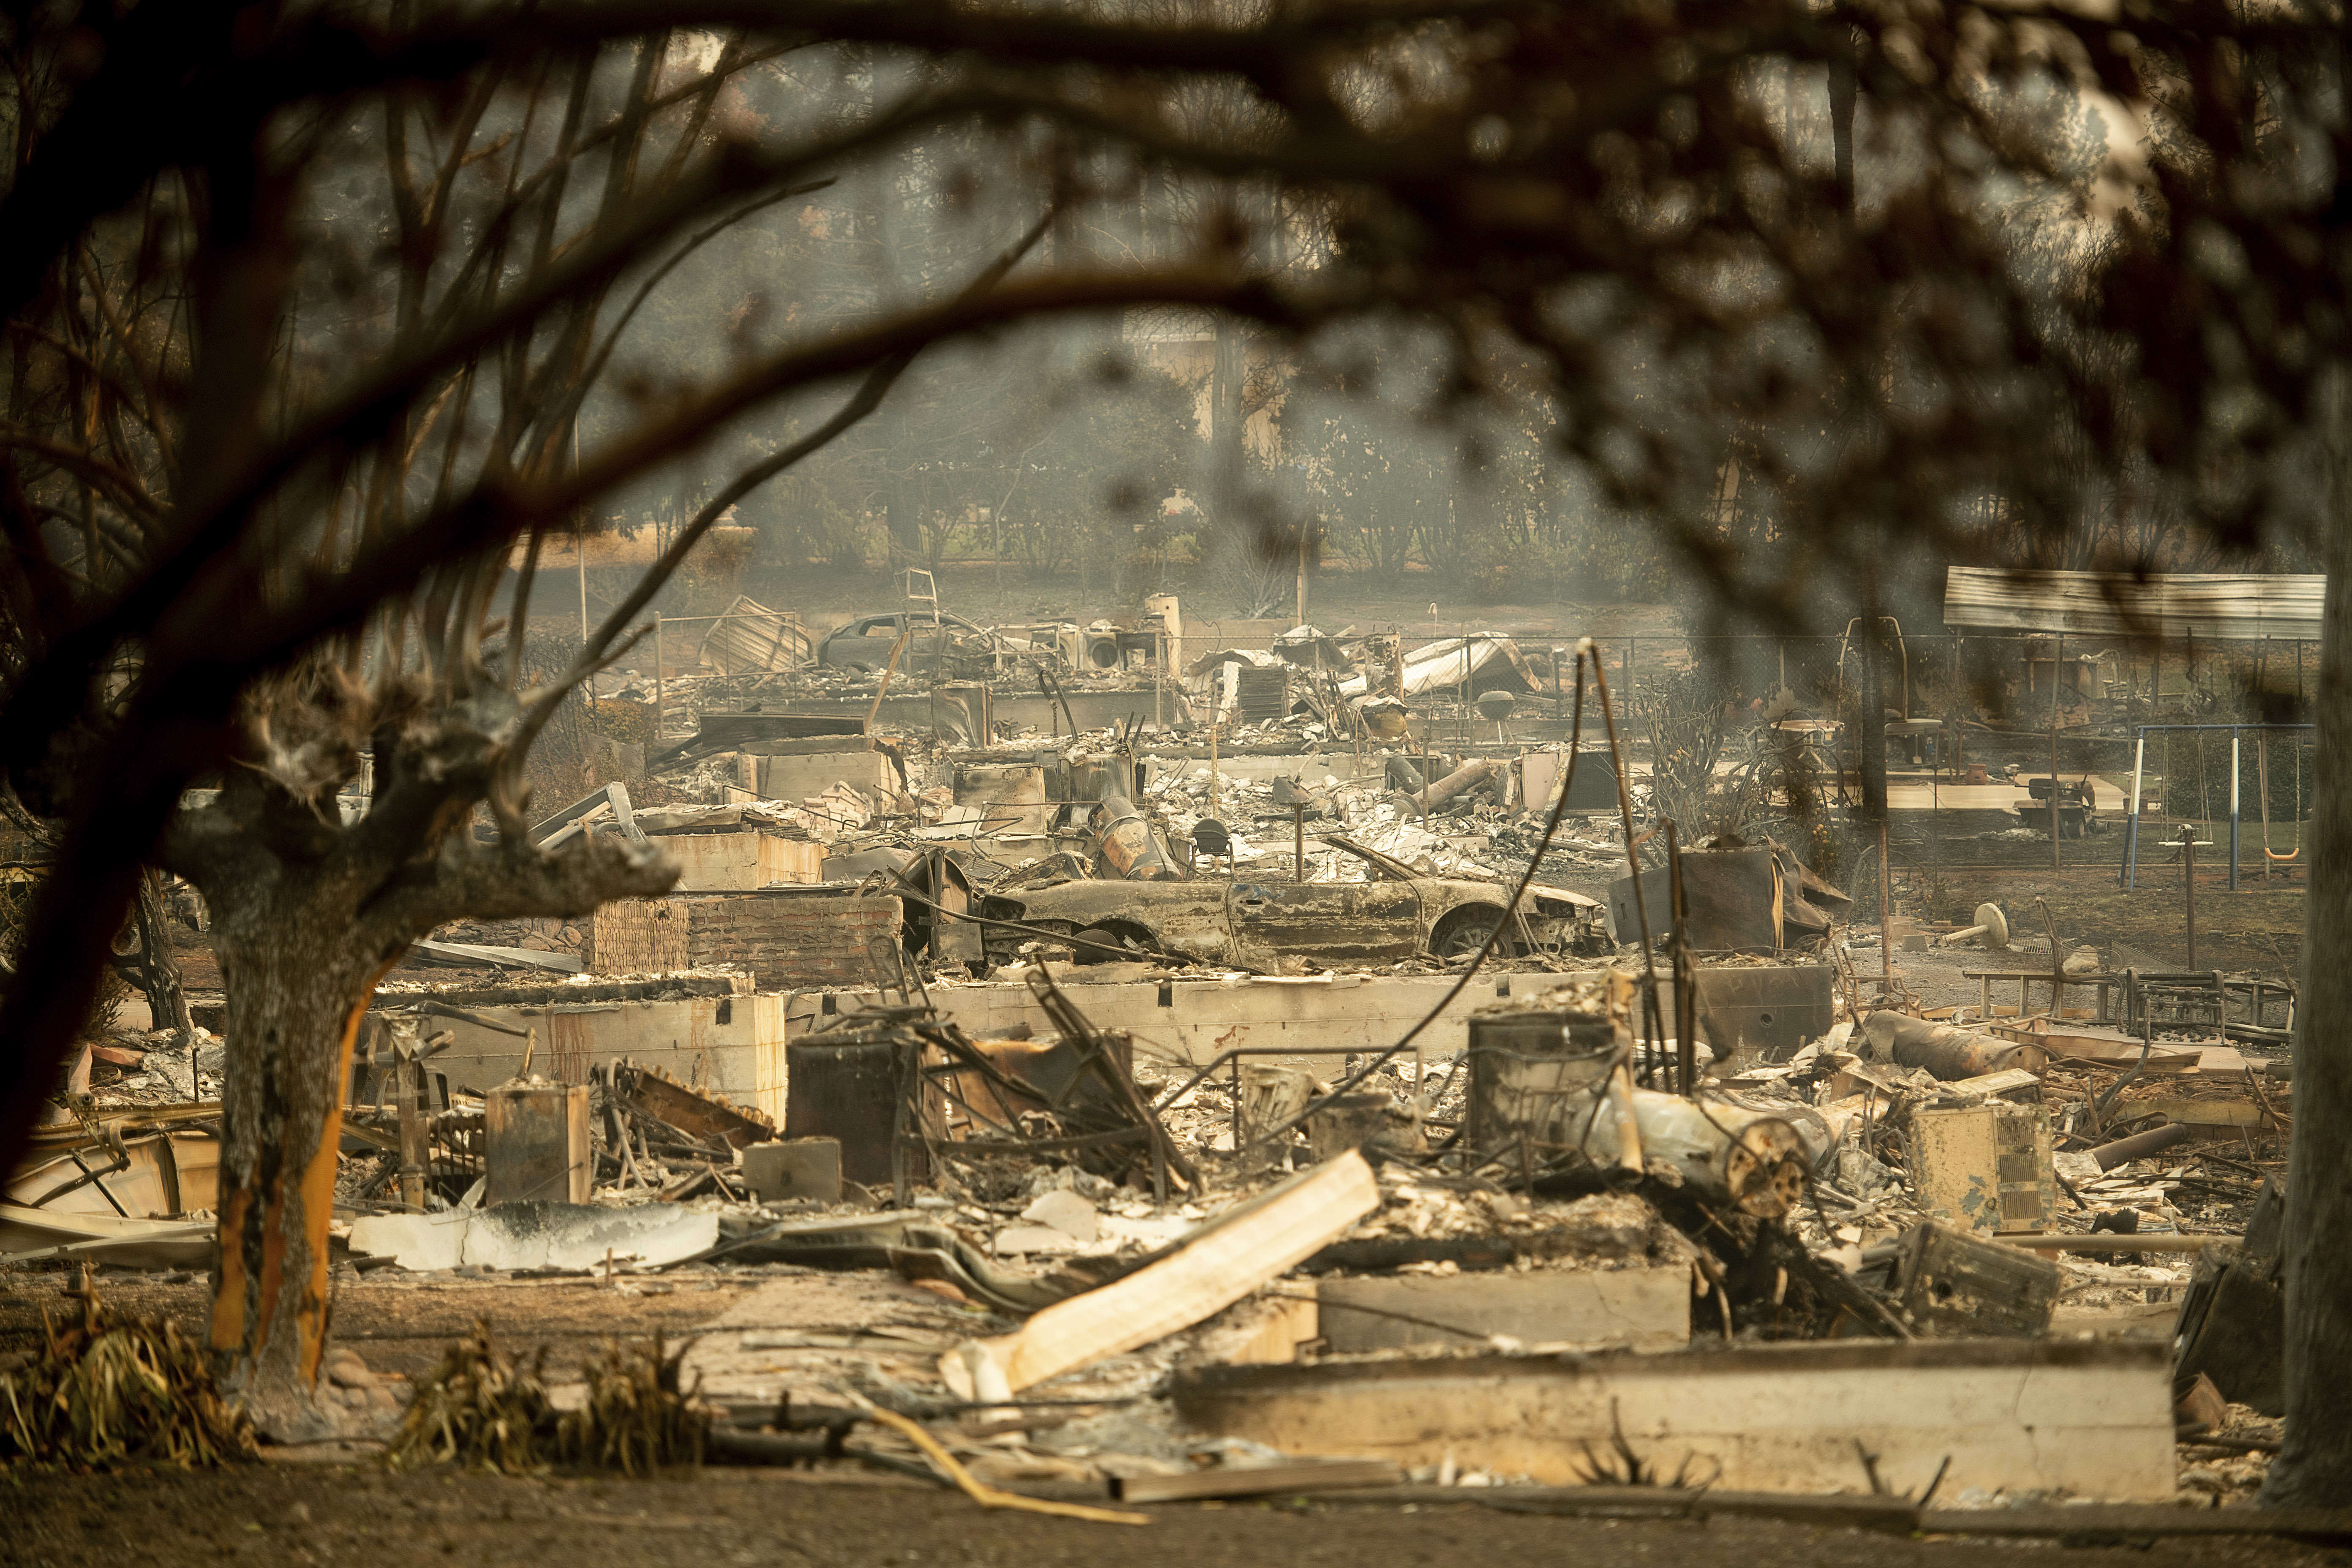 Camp fire death toll at 42, making it worst in California history